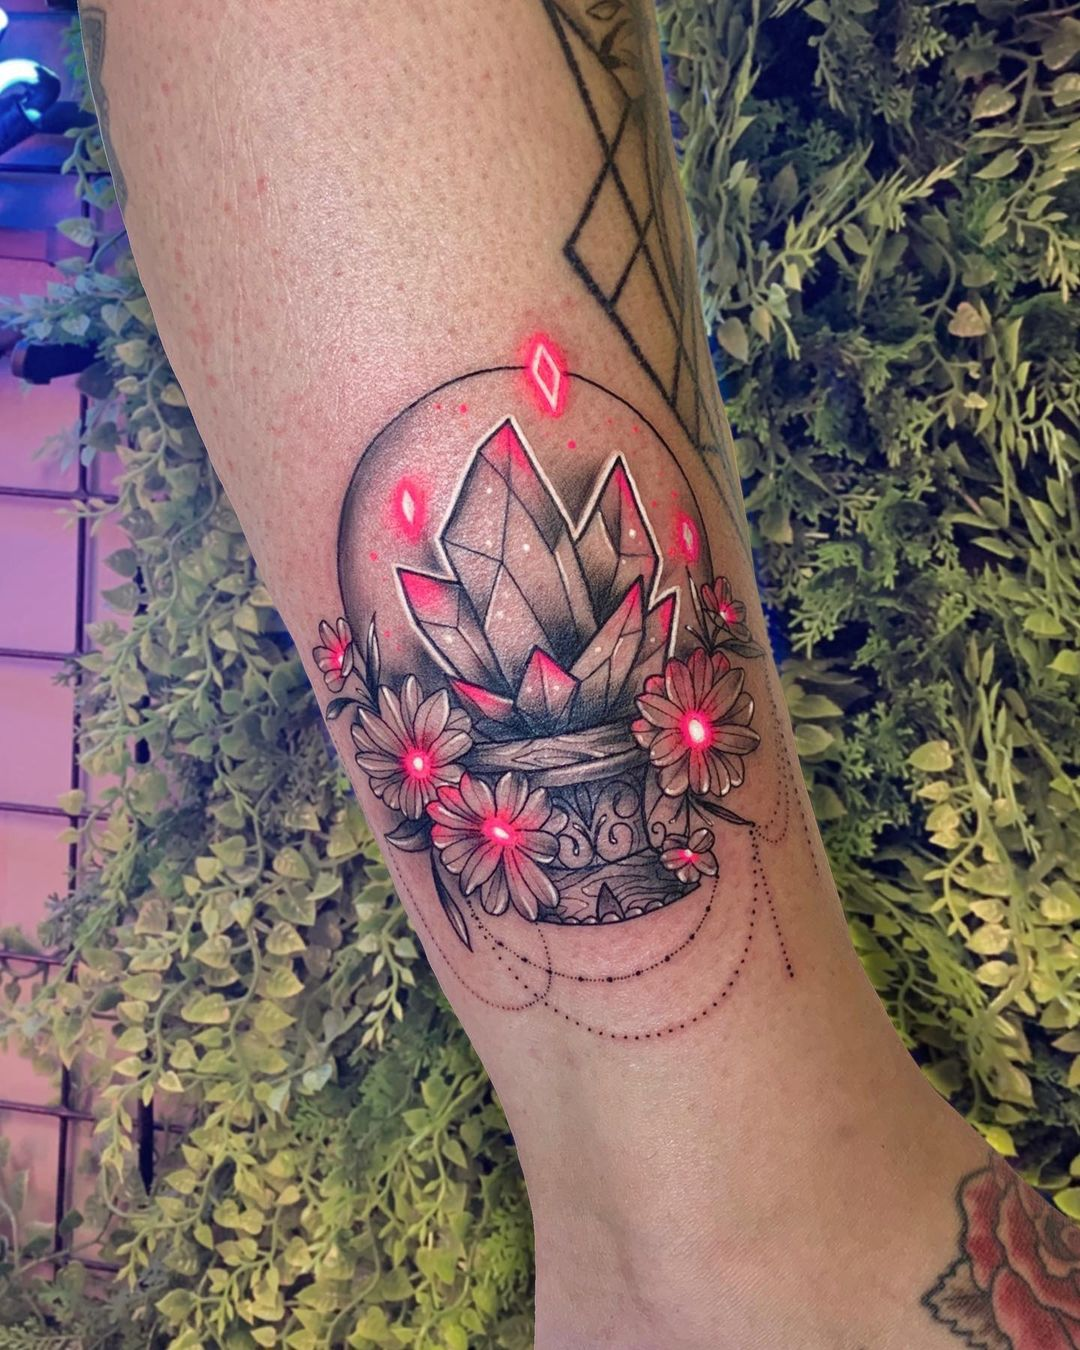 25 neon tattoos that crank the color to the max